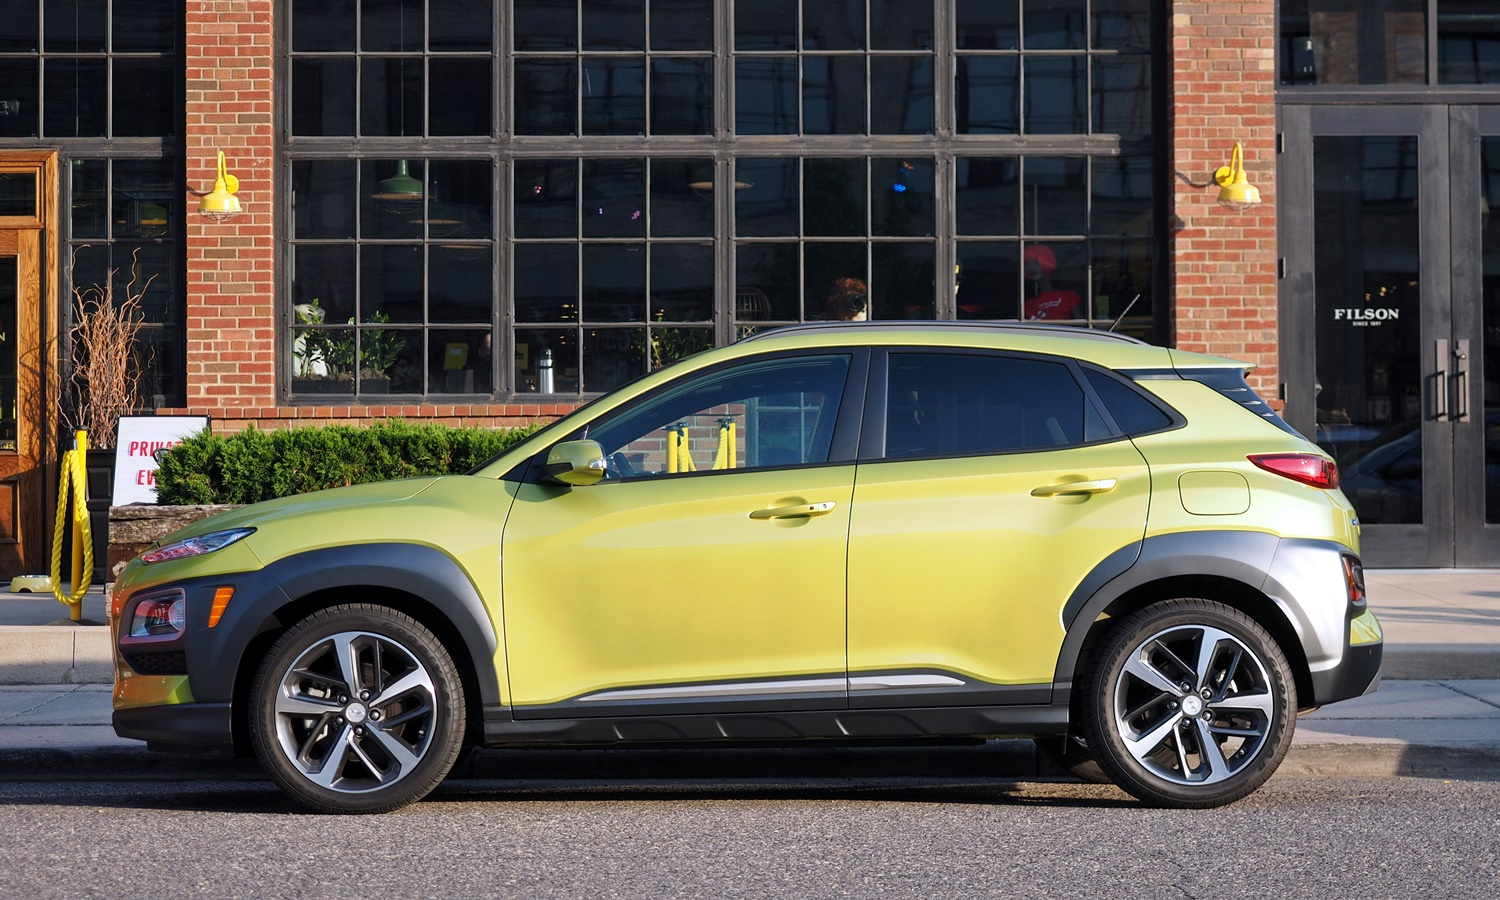 Hyundai Kona Photos: 2018 Hyundai Kona side view